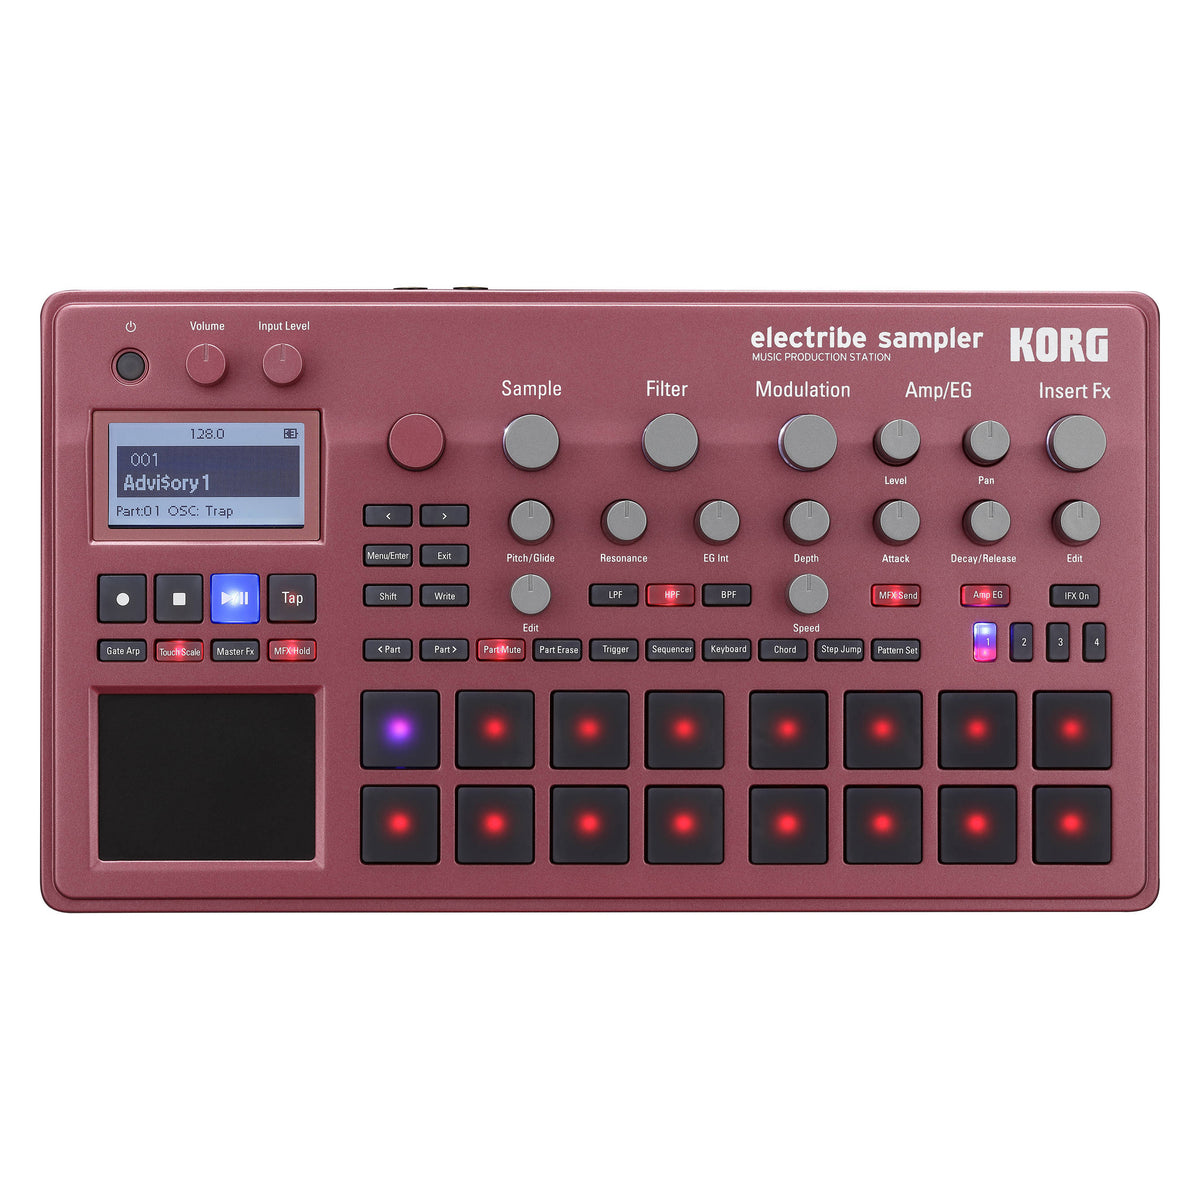 Korg: Electribe Sample Based Production Station - Red (electribe2srd)